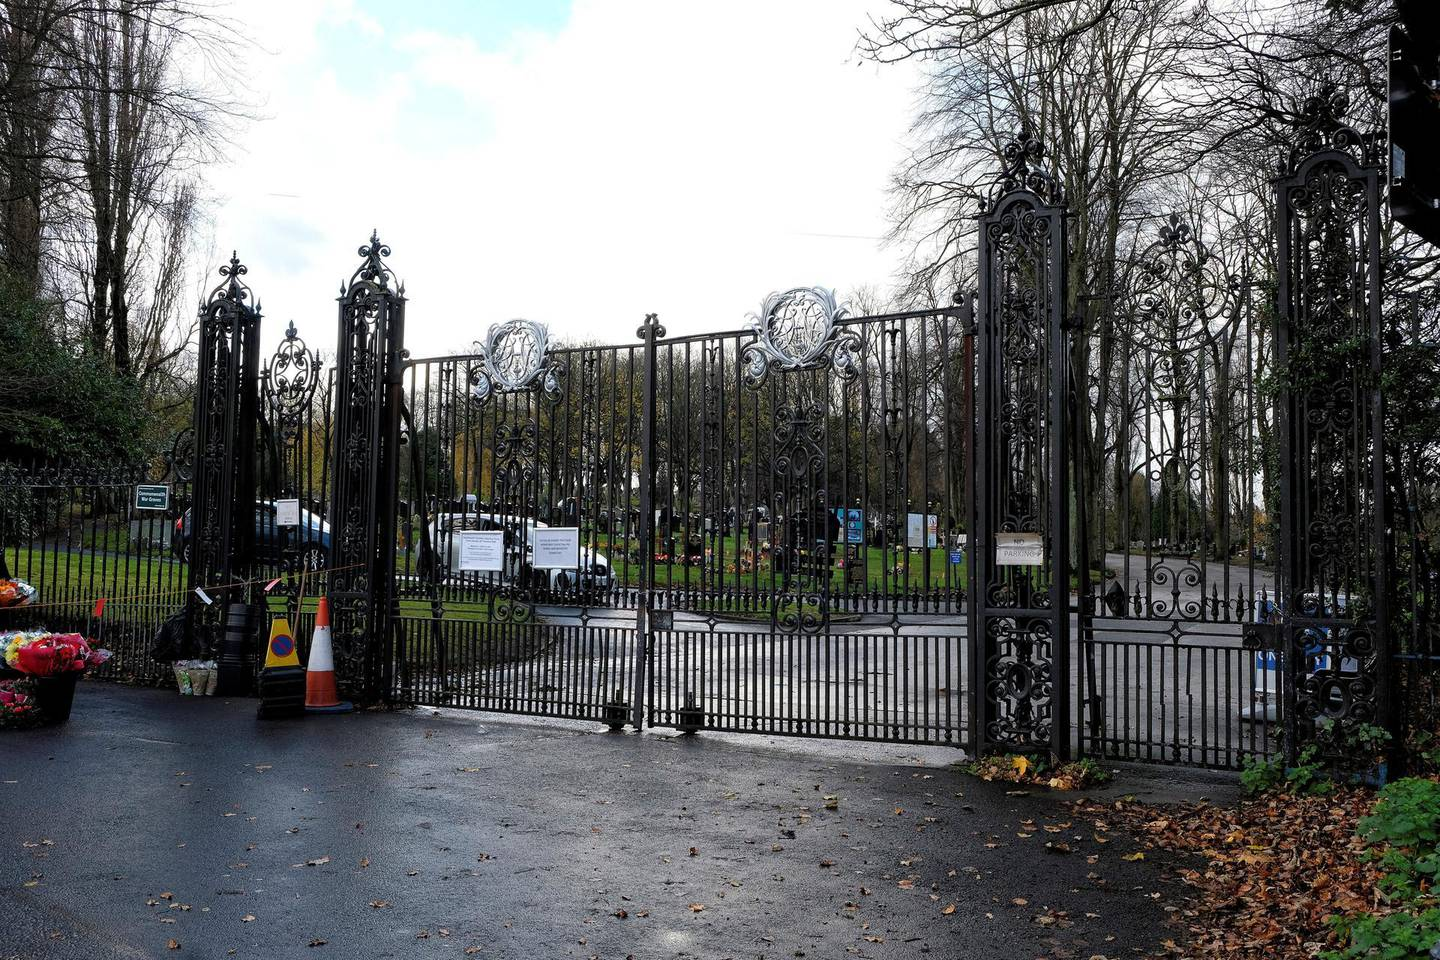 Locked gates at Handsworth Cemetery in Birmingham, UK. Photos by JOHN ROBERTSON/The National, 19th November, 2020.MORE PICS TO FOLLOW AFTER 2PM GATES OPENING!